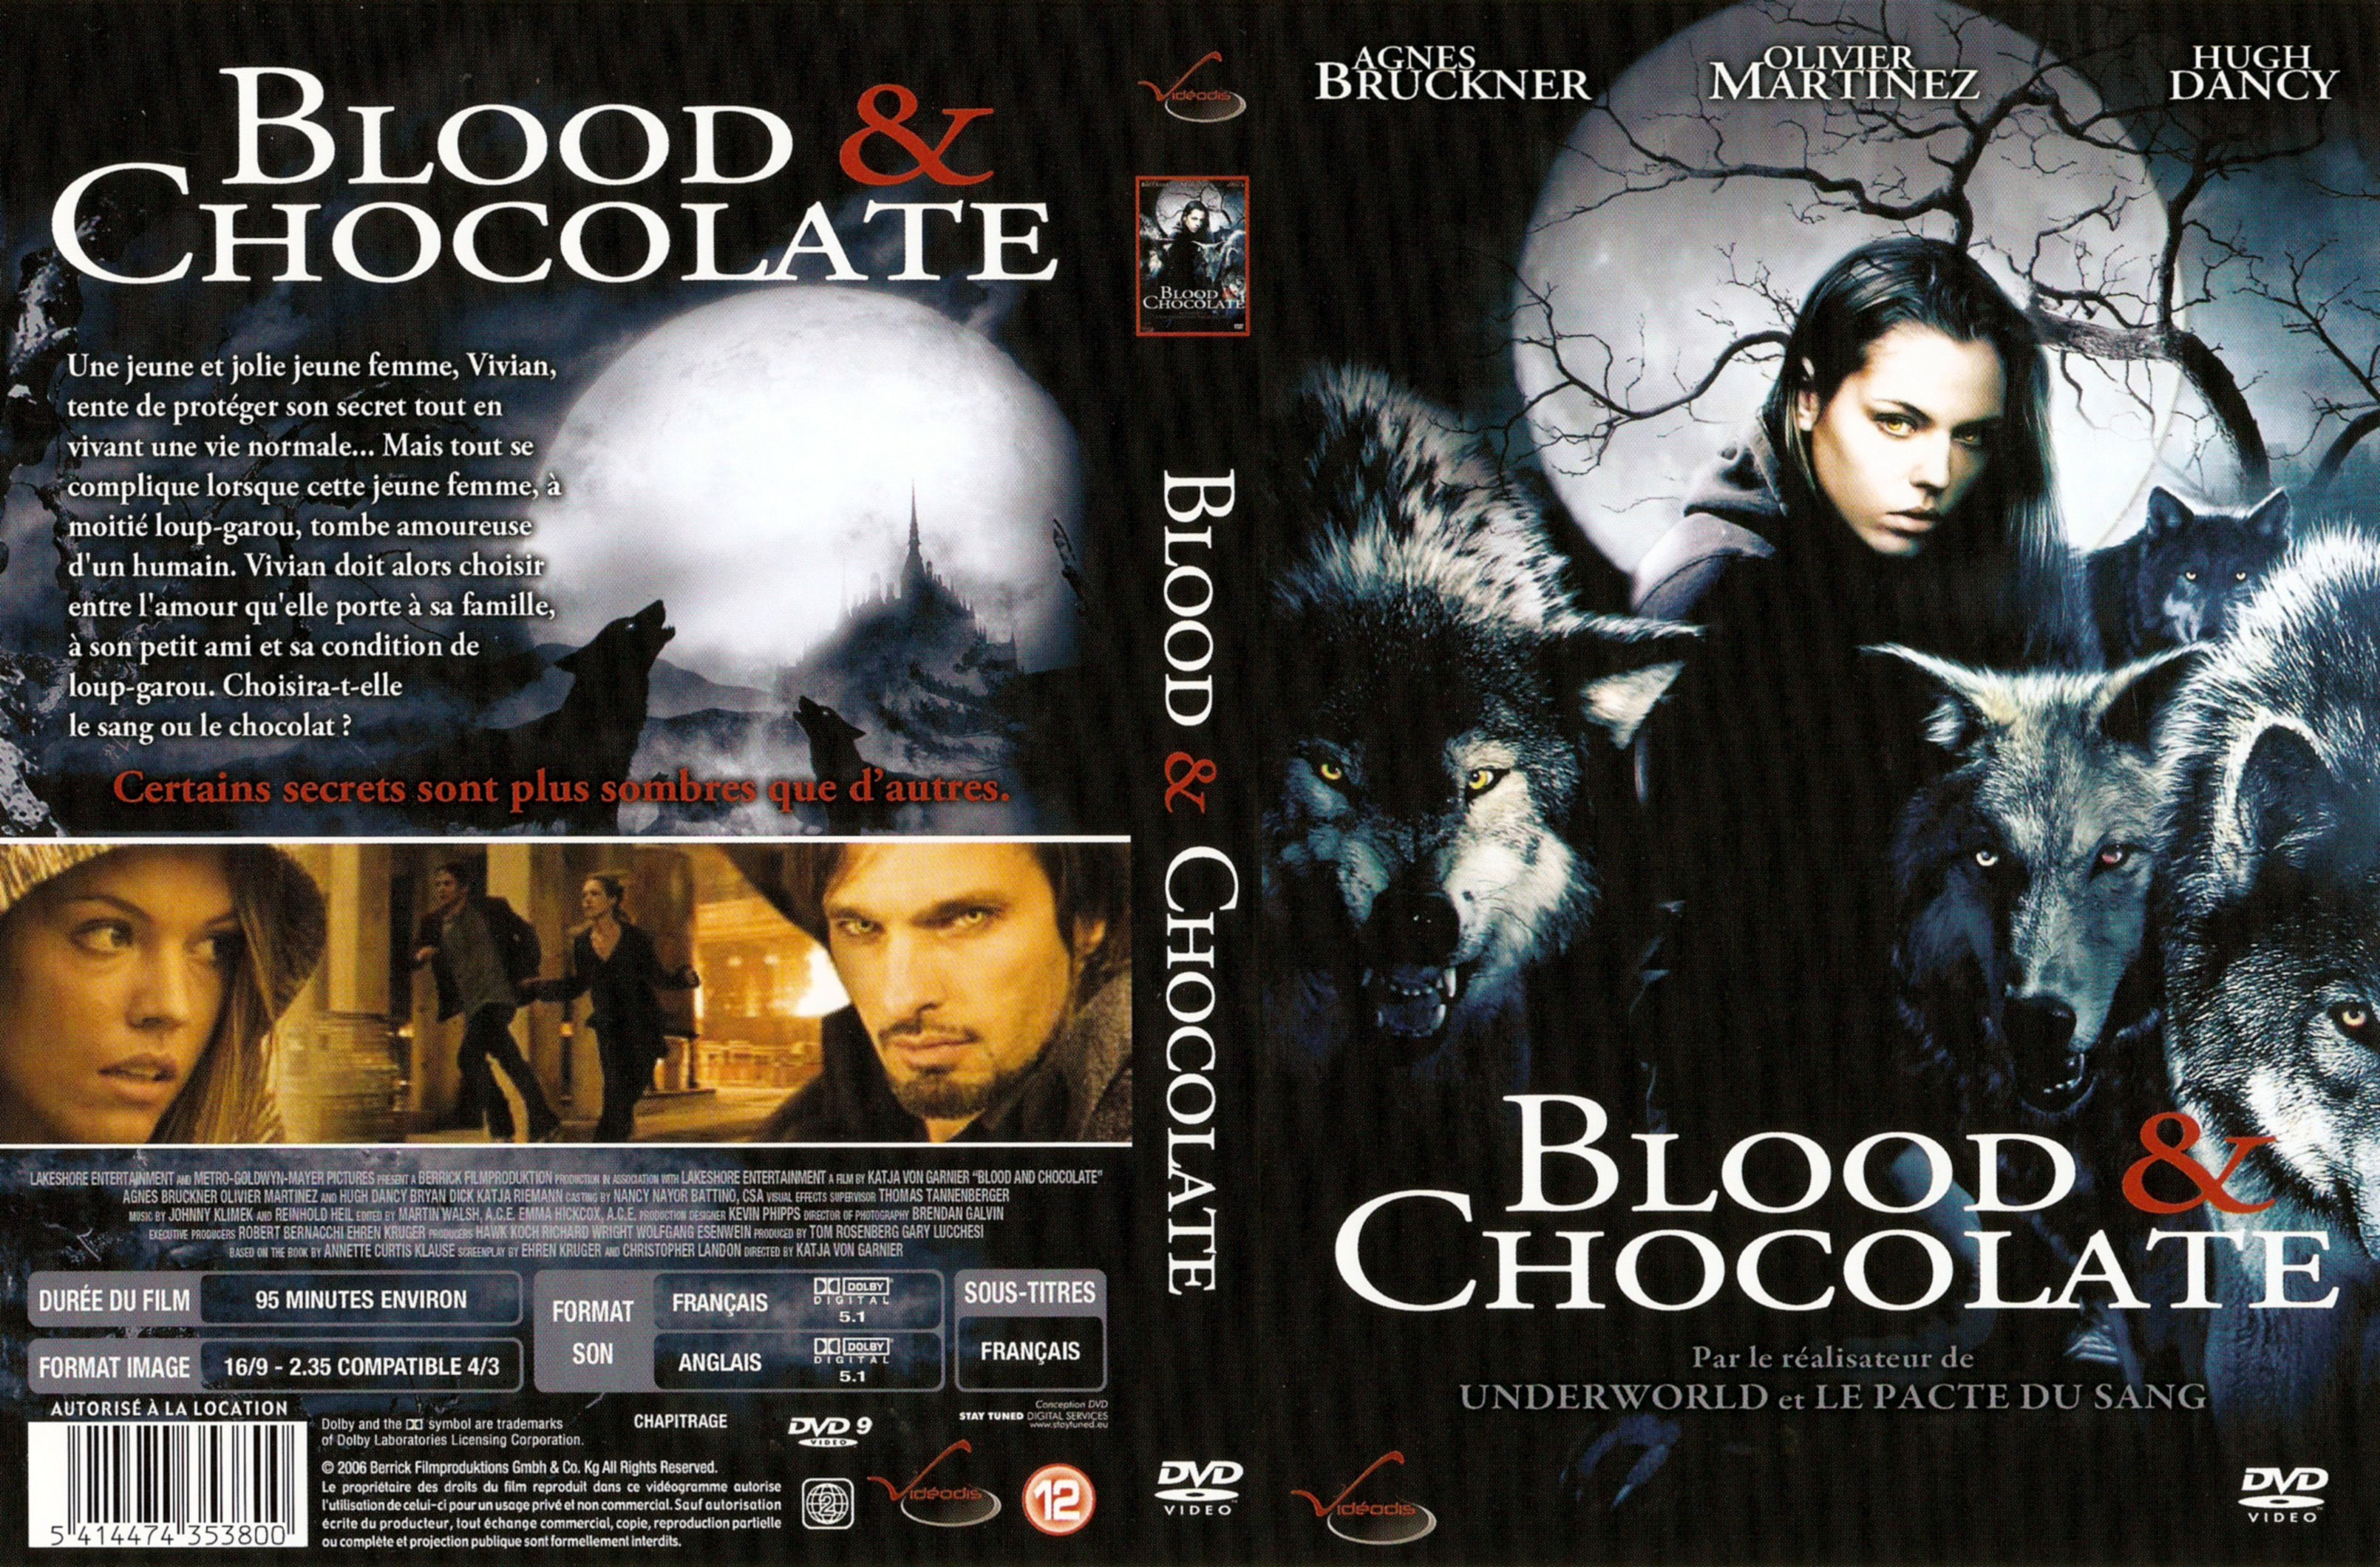 Blood and Chocolate Photos - Blood and Chocolate Images: Ravepad ...